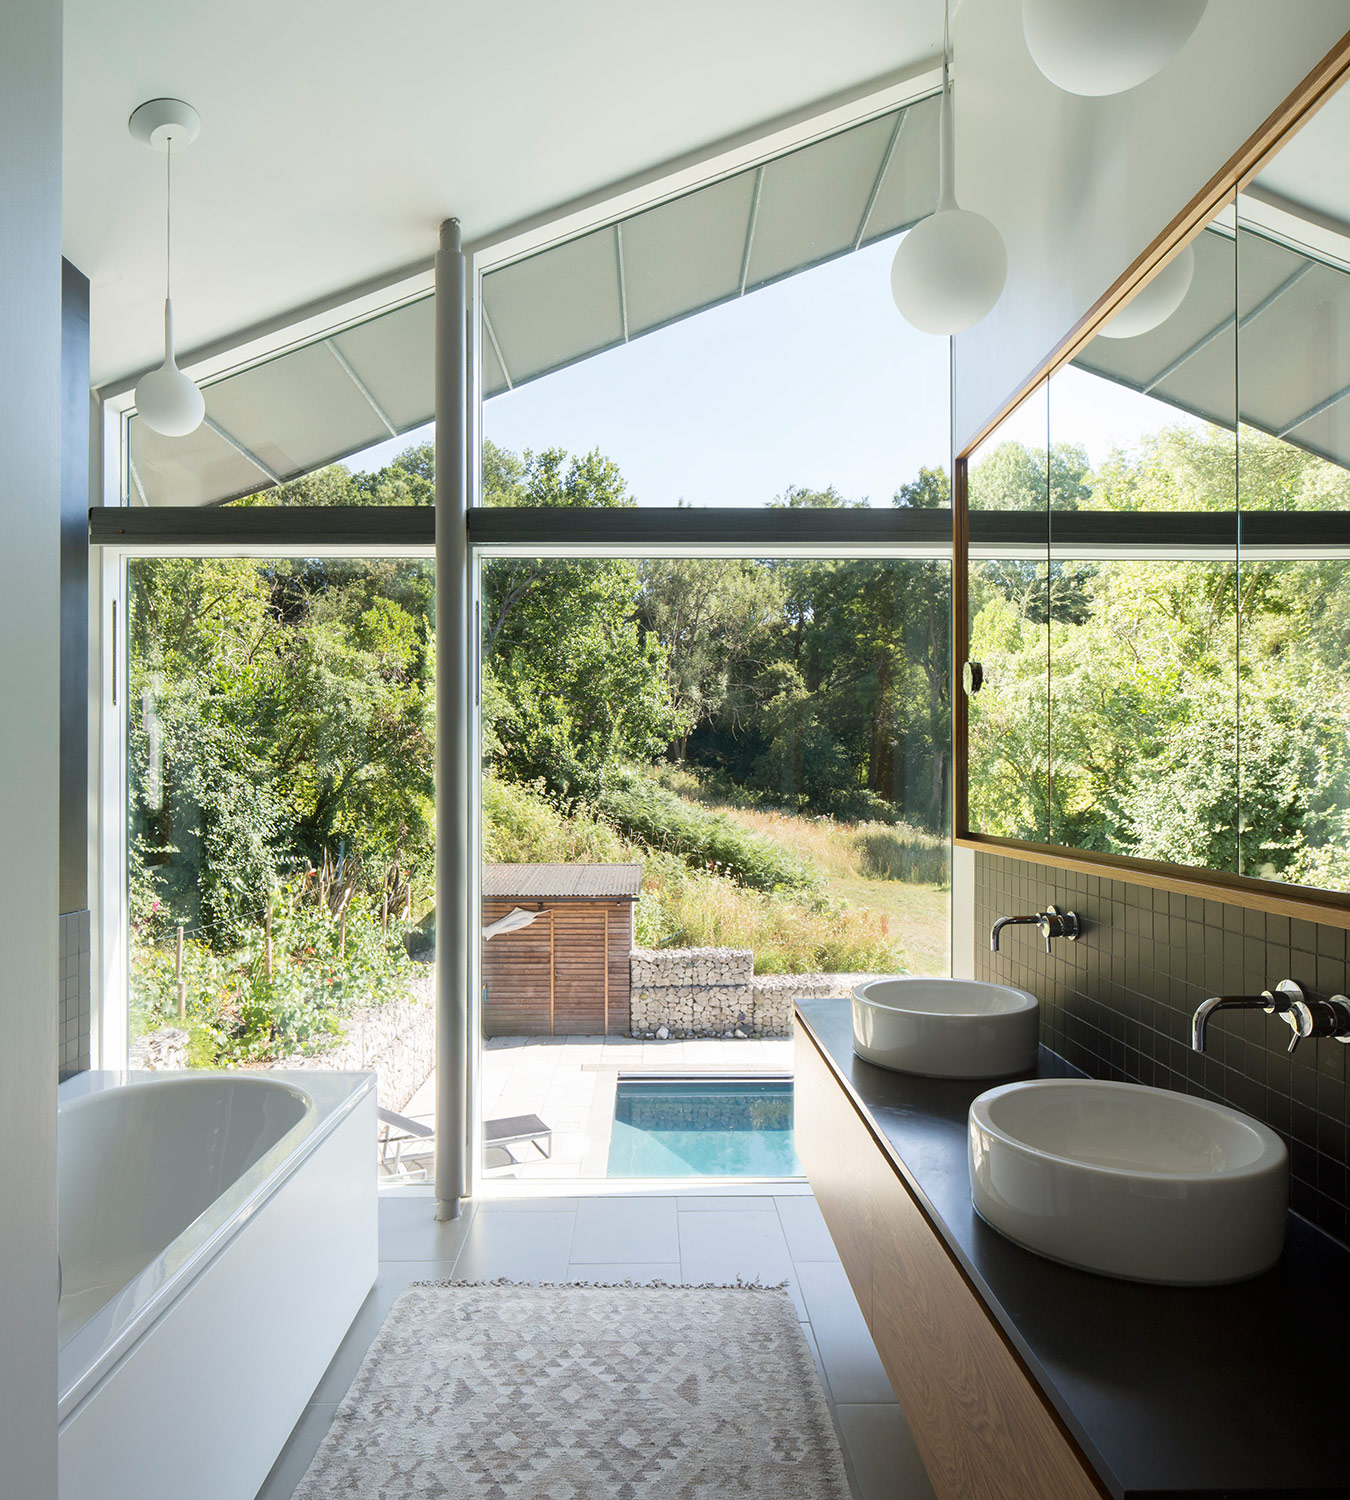 Bathroom of extension and remodelling of large 1970s house Porter Leake House with view of pool